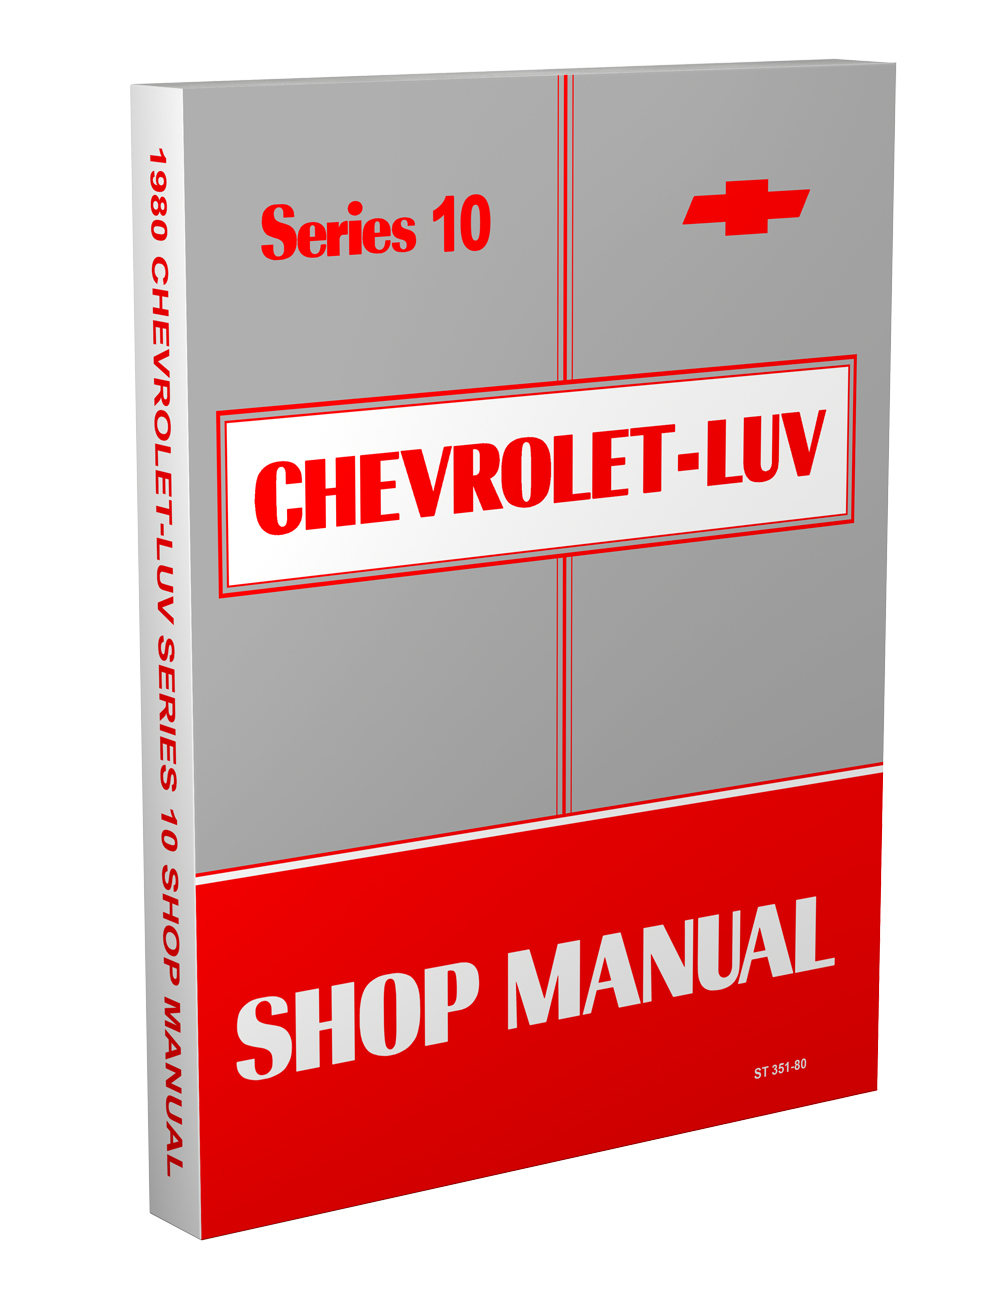 1980 Chevy Luv Series 10 Repair Manual Original